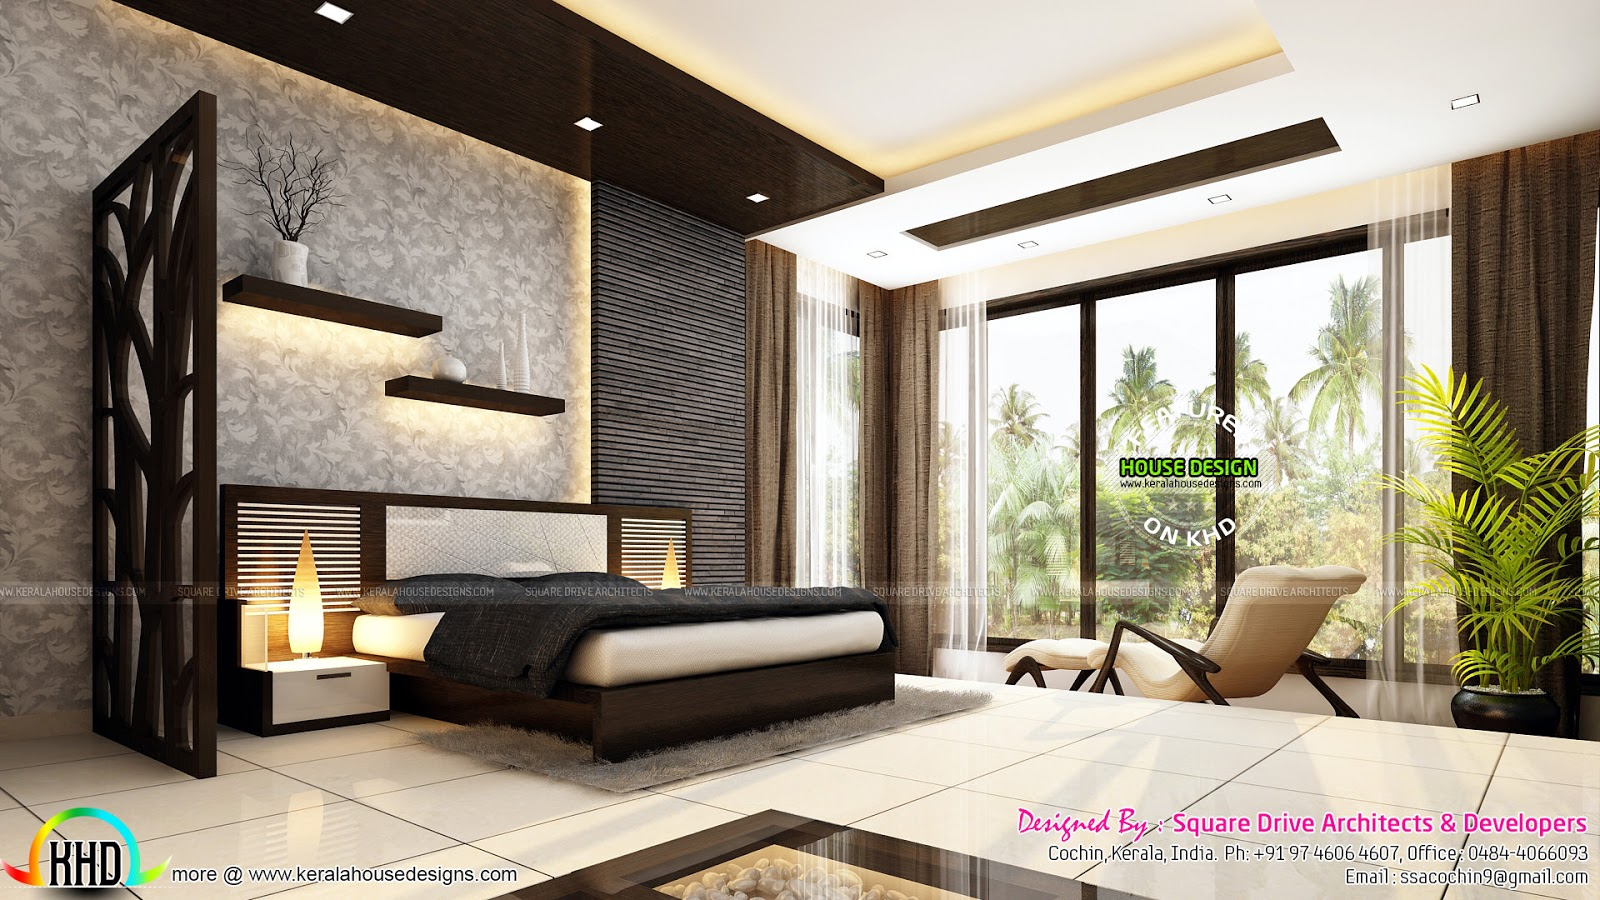 Very beautiful modern interior designs kerala home design and floor plans - Interior bedroom design ...